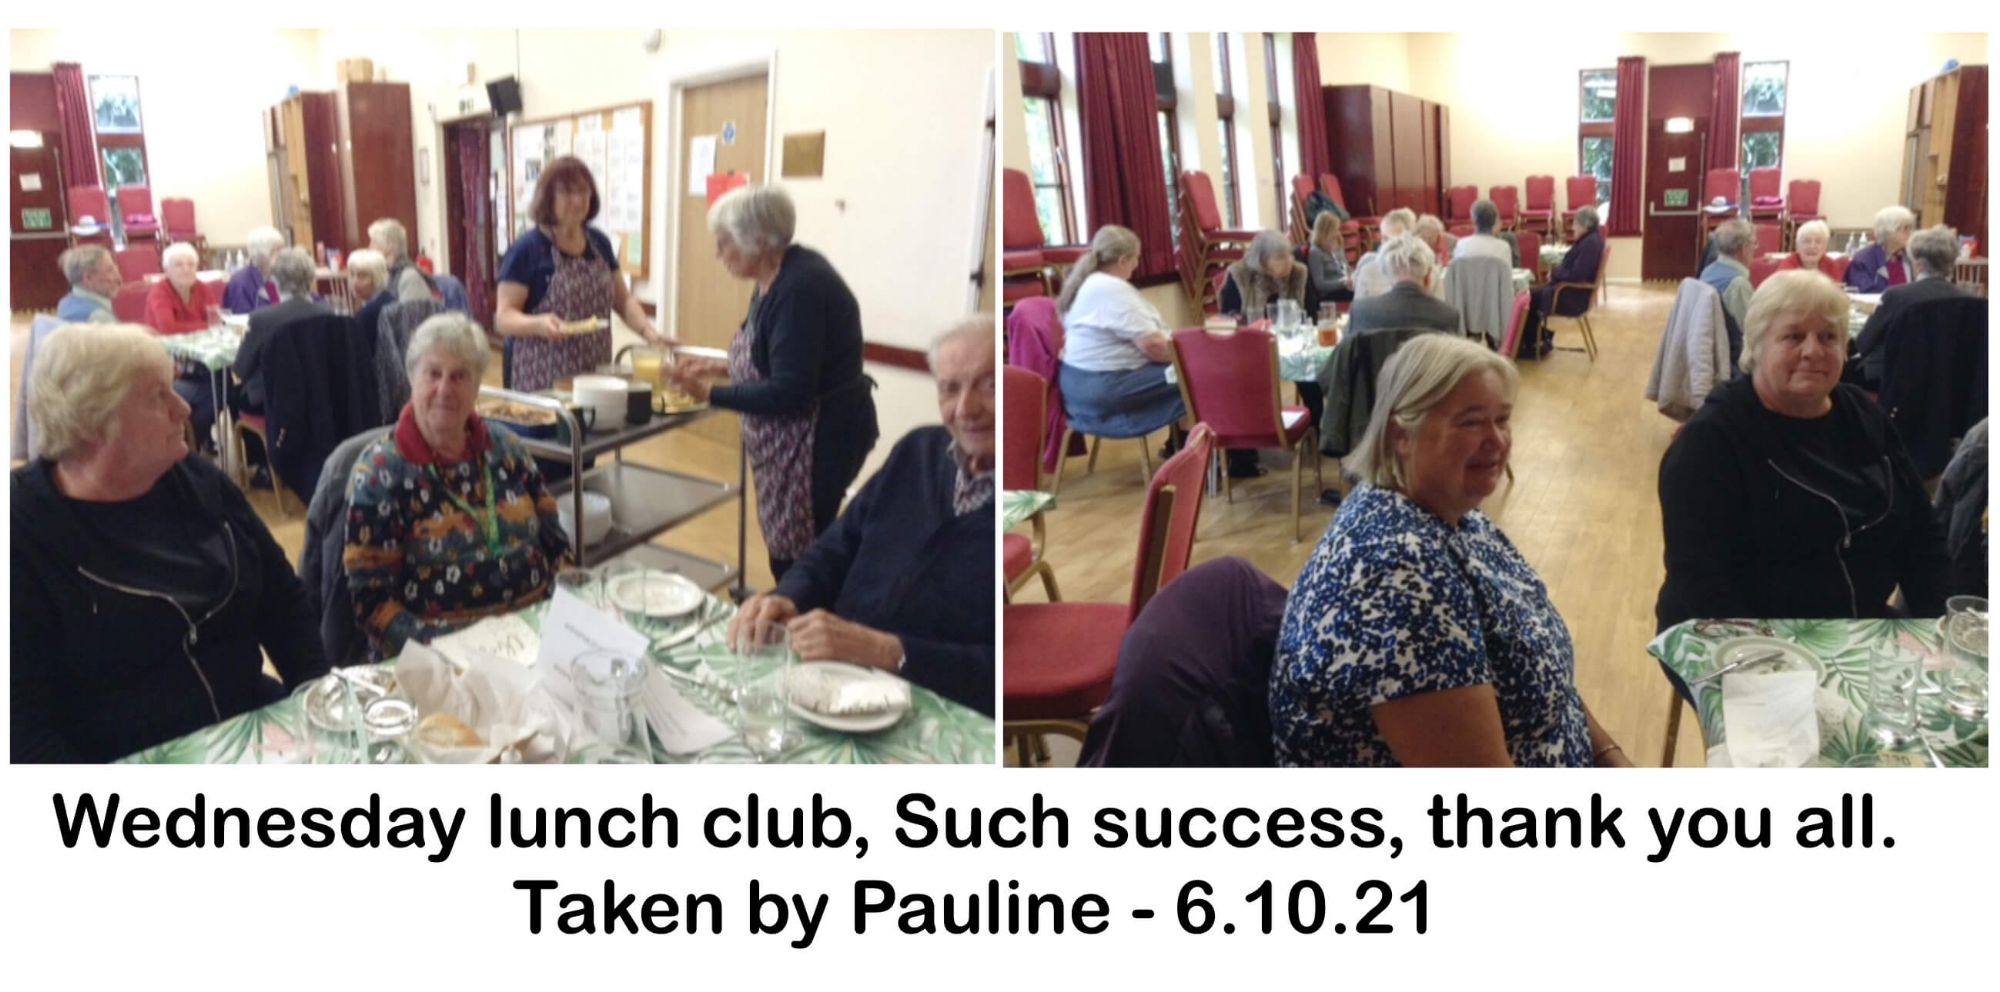 Wednesday lunch club, Such success, thank you all.